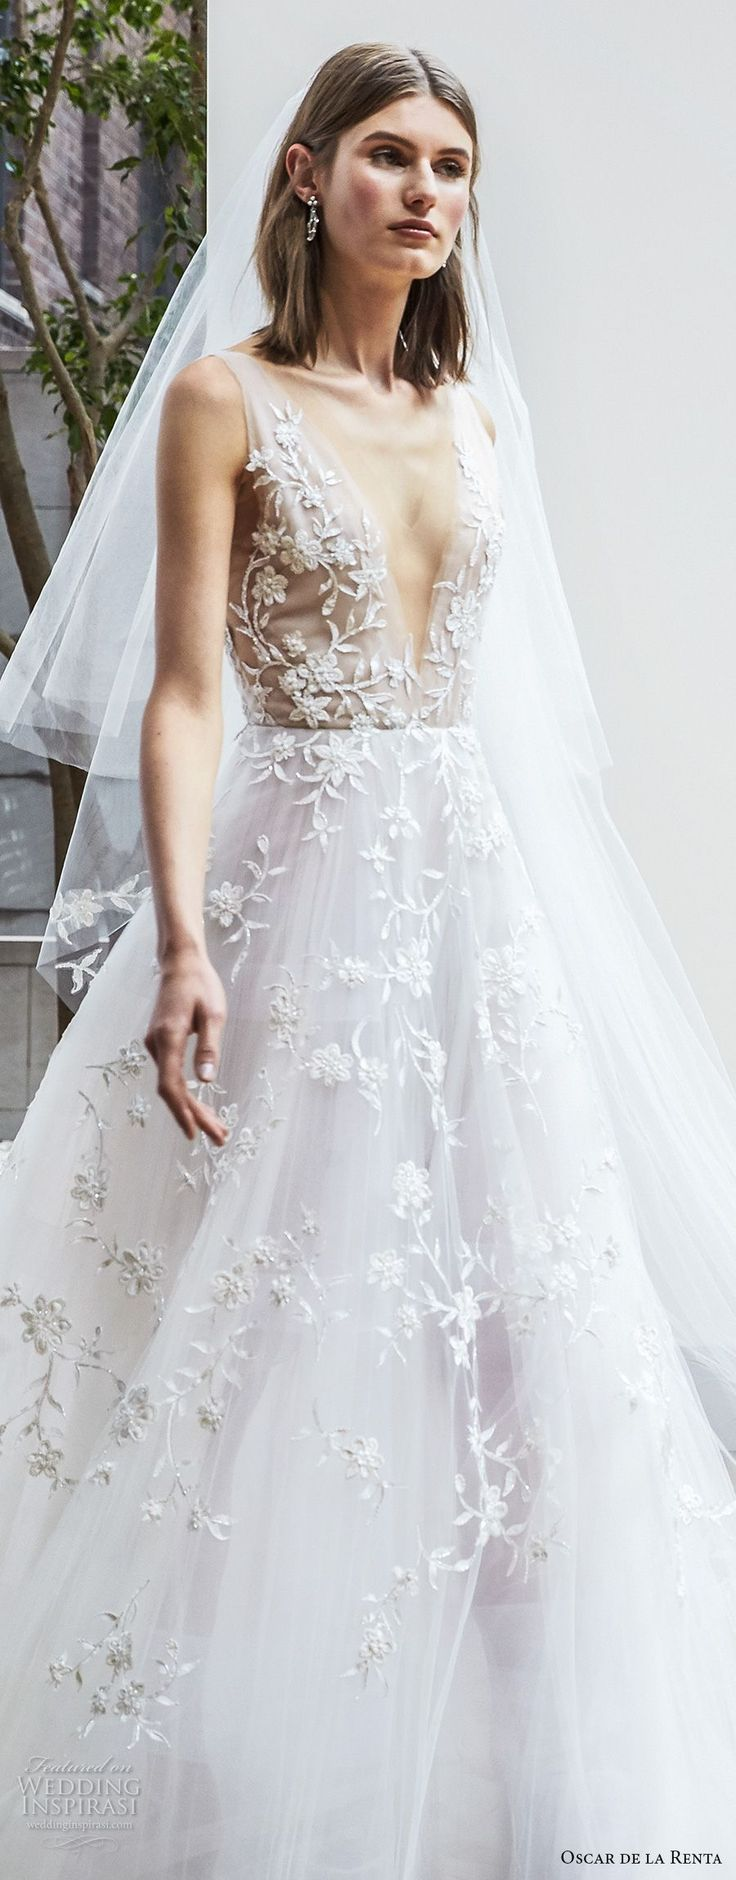 oscar de la renta spring 2018 bridal sleeveless deep v neck full embellishment beautiful romantic a line wedding dress open v back chapel train (14a) zv -- Oscar de la Renta Spring 2018 Wedding Dresses